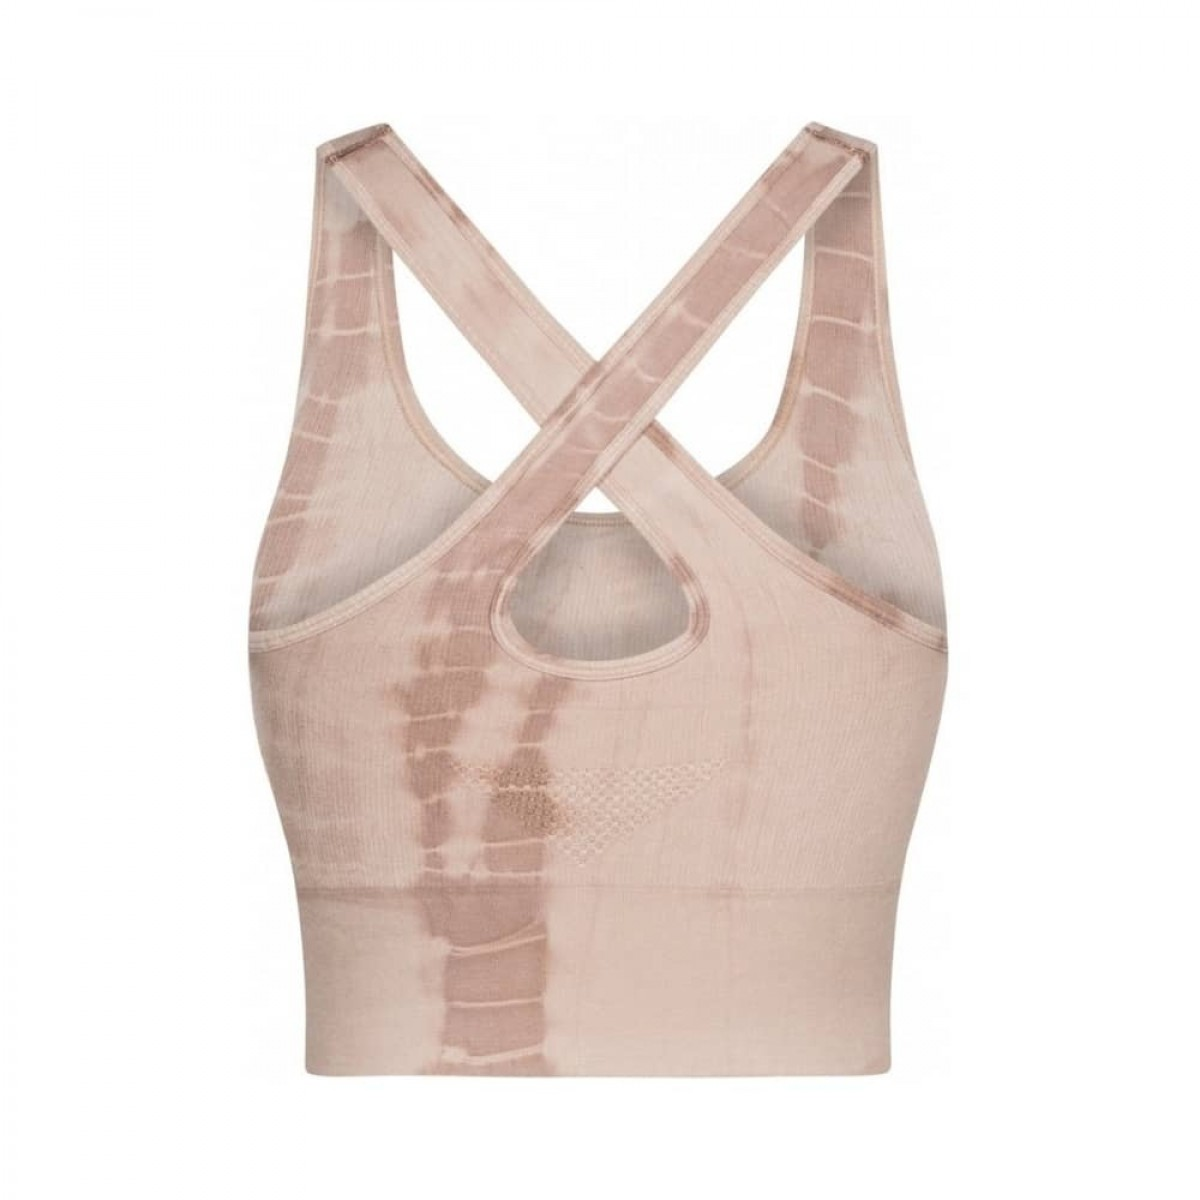 lifa yoga top - coublestone with taupe tie dye - ryggen